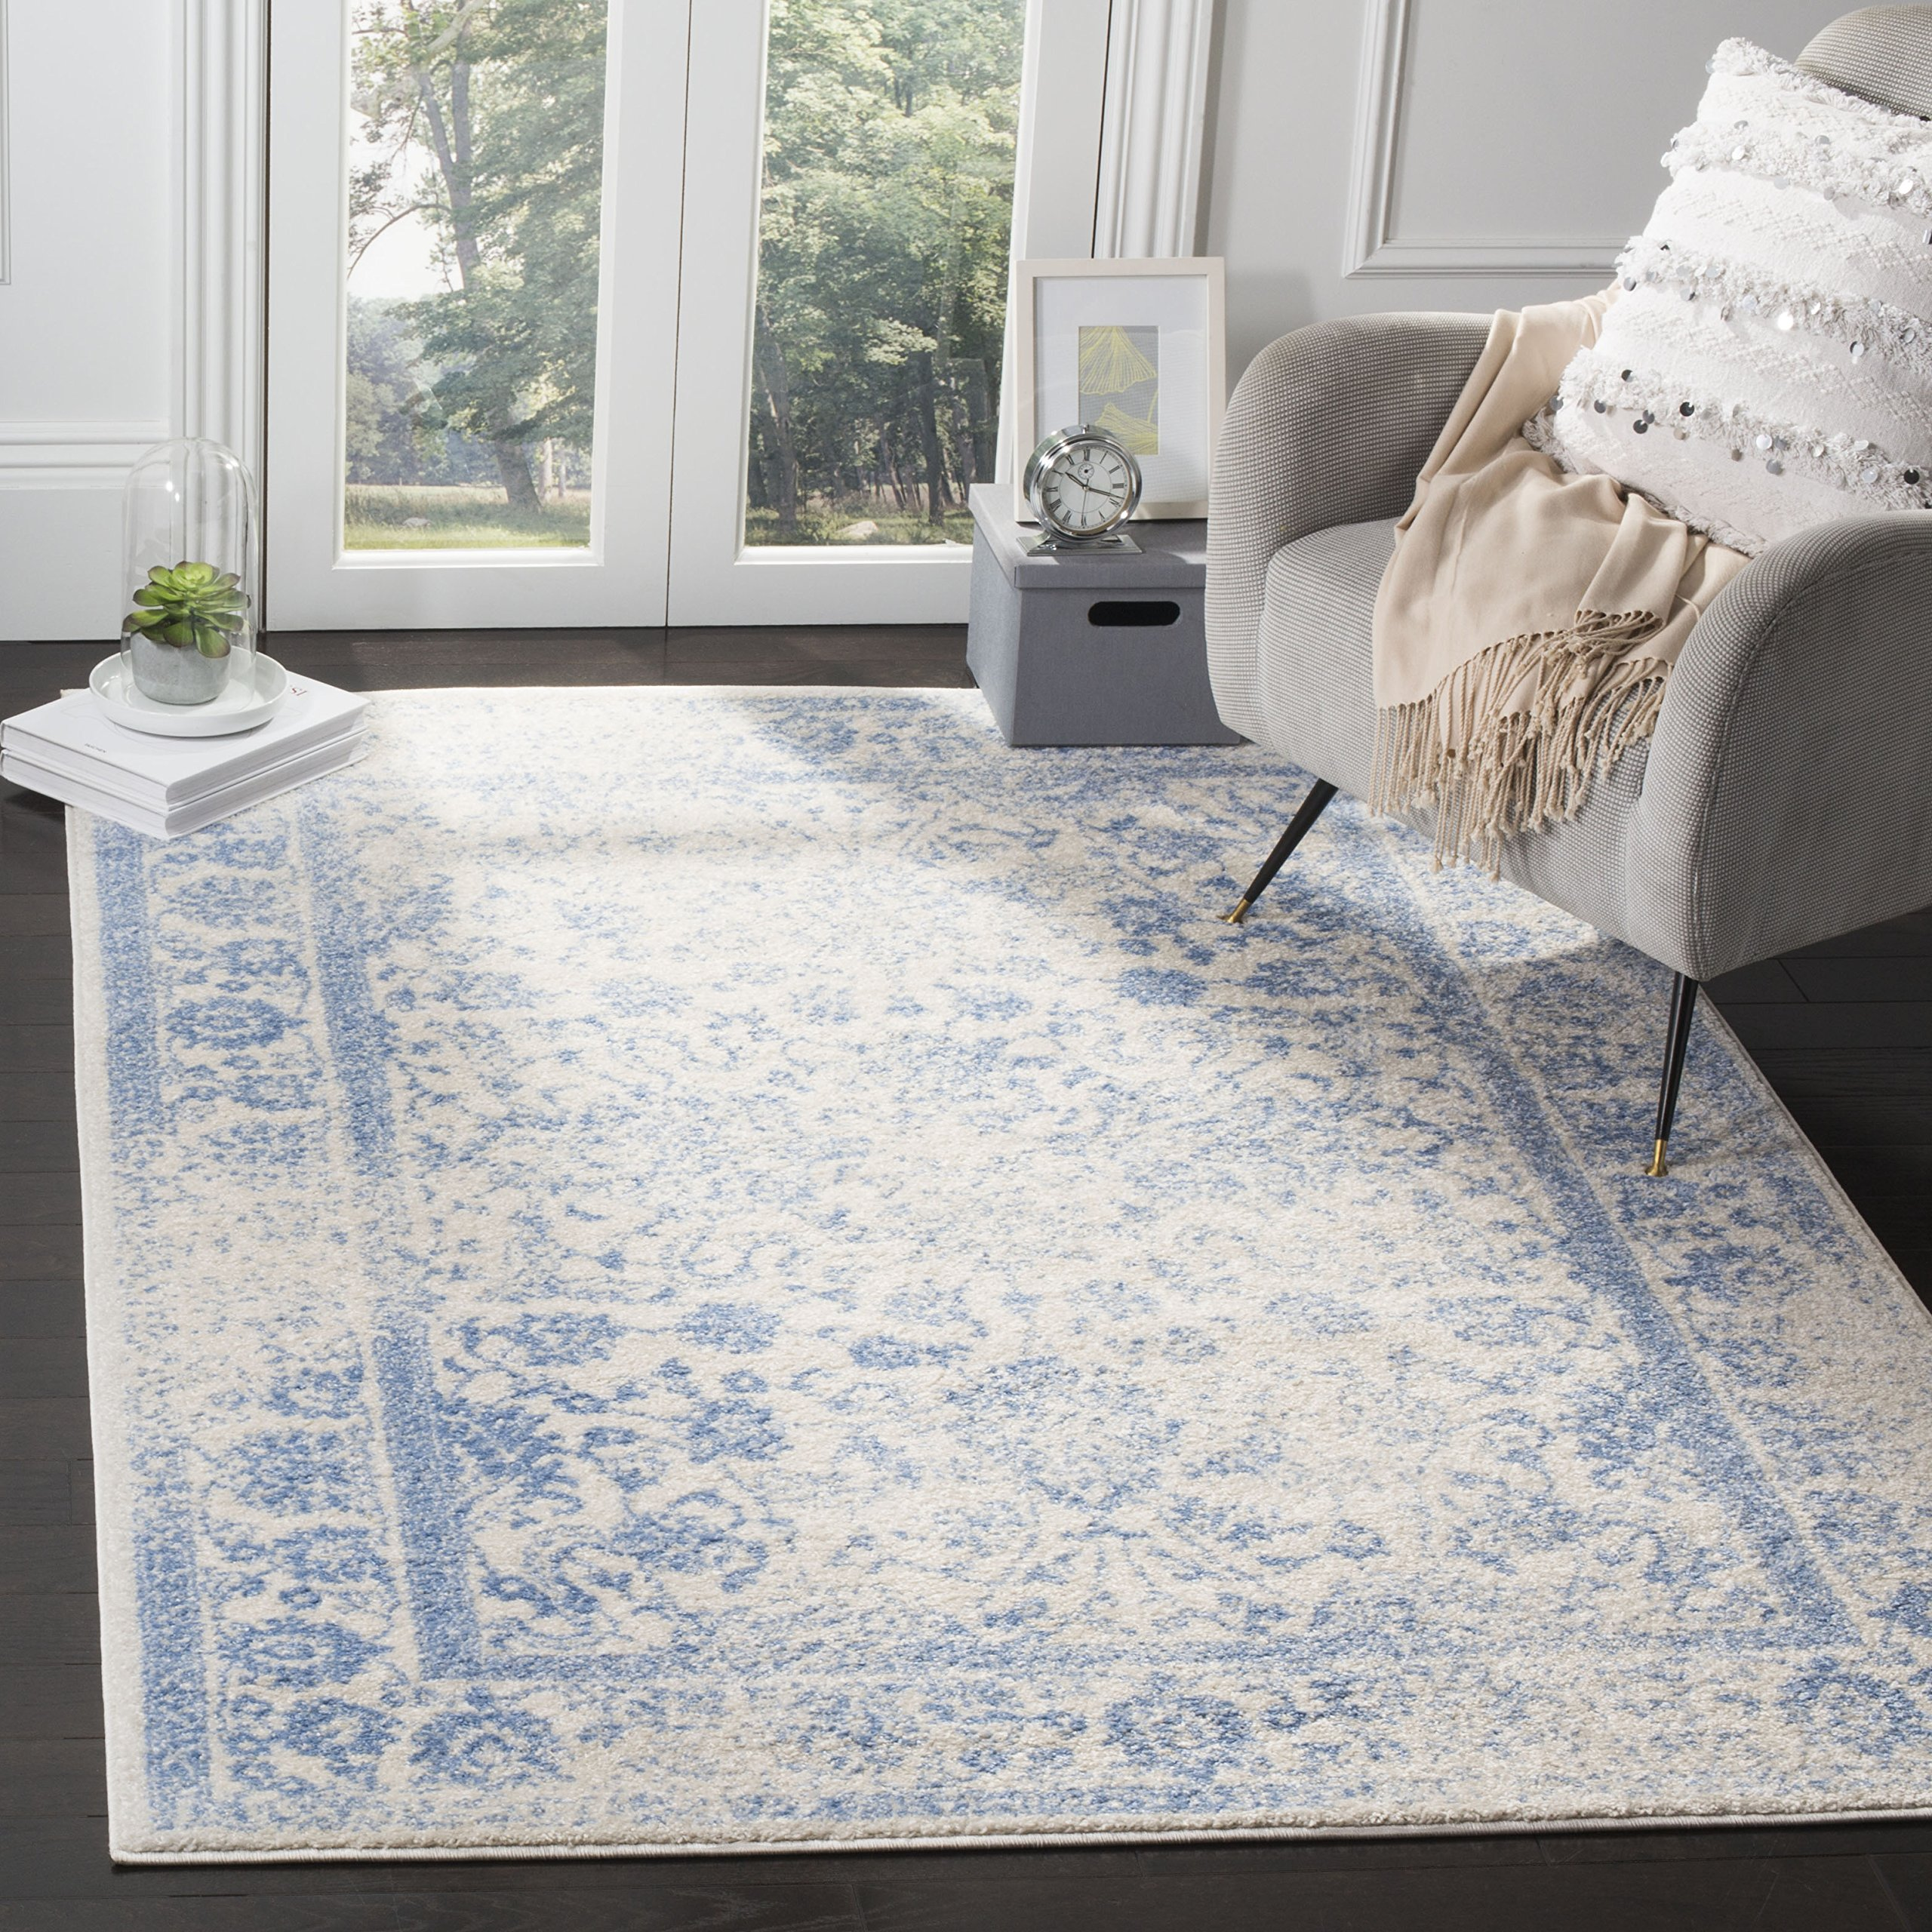 Safavieh Adirondack Collection ADR109L Ivory and Light Blue Oriental Vintage Distressed Area Rug (8' x 10) by Safavieh